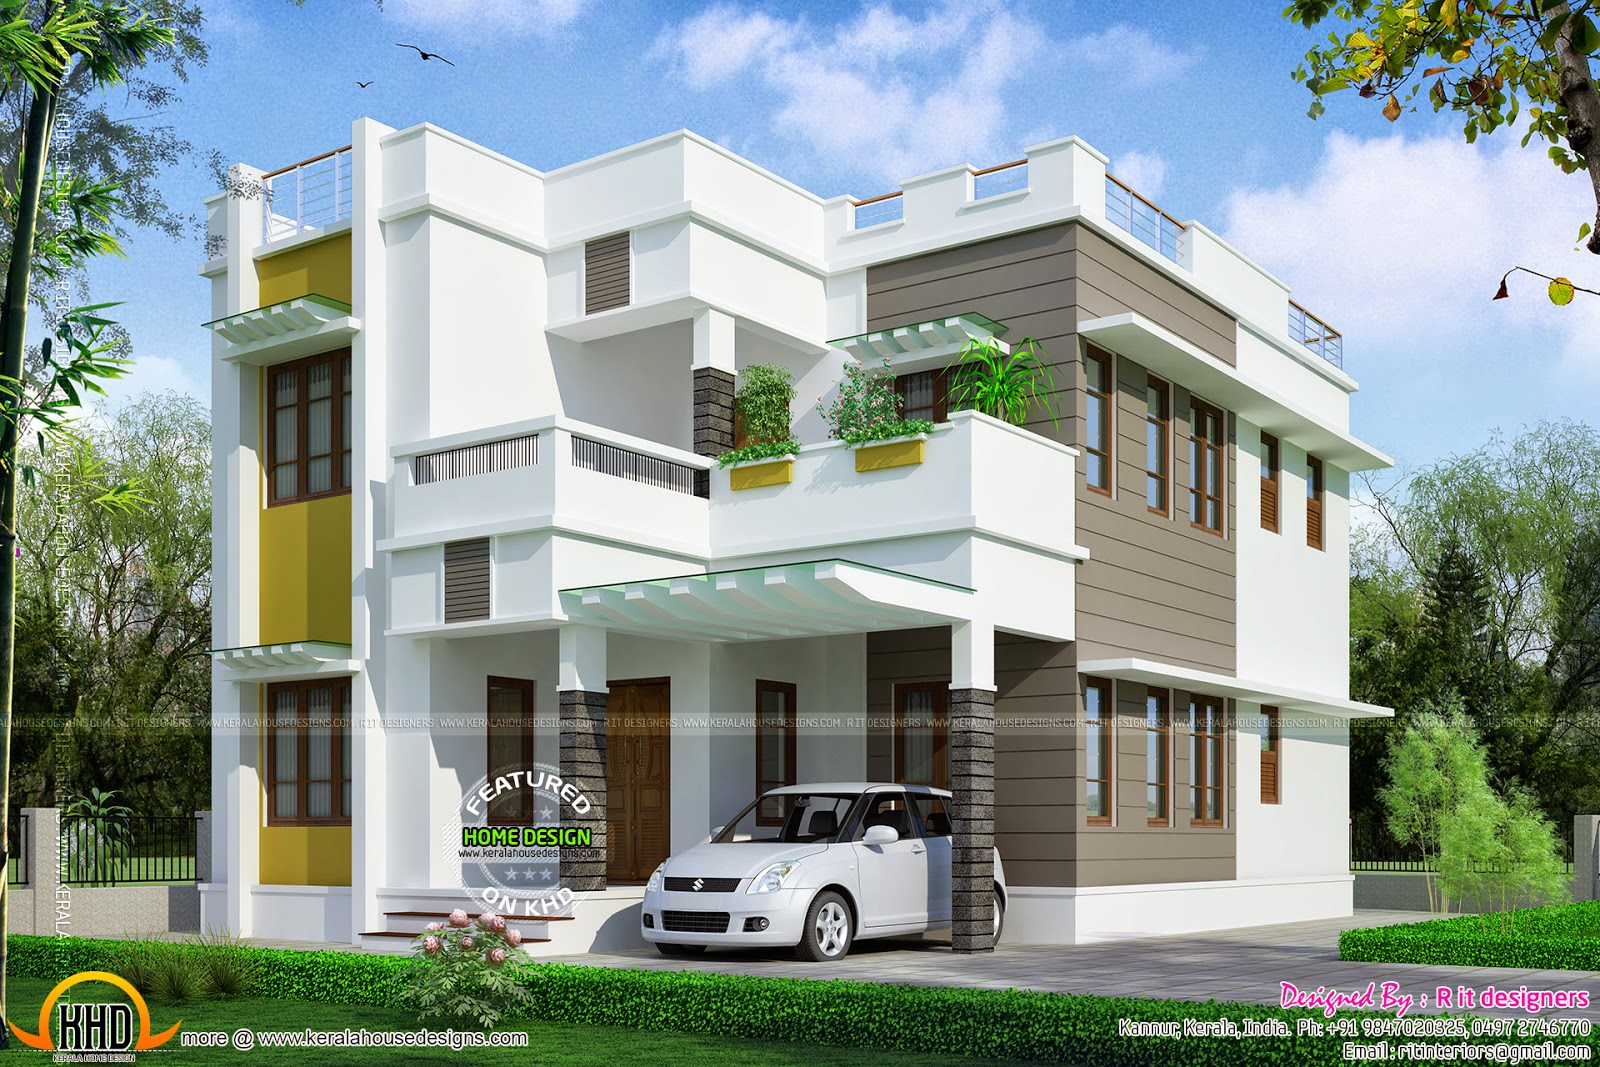 Beautiful 2145 square feet house kerala home design and floor plans - Beautiful design of a house ...